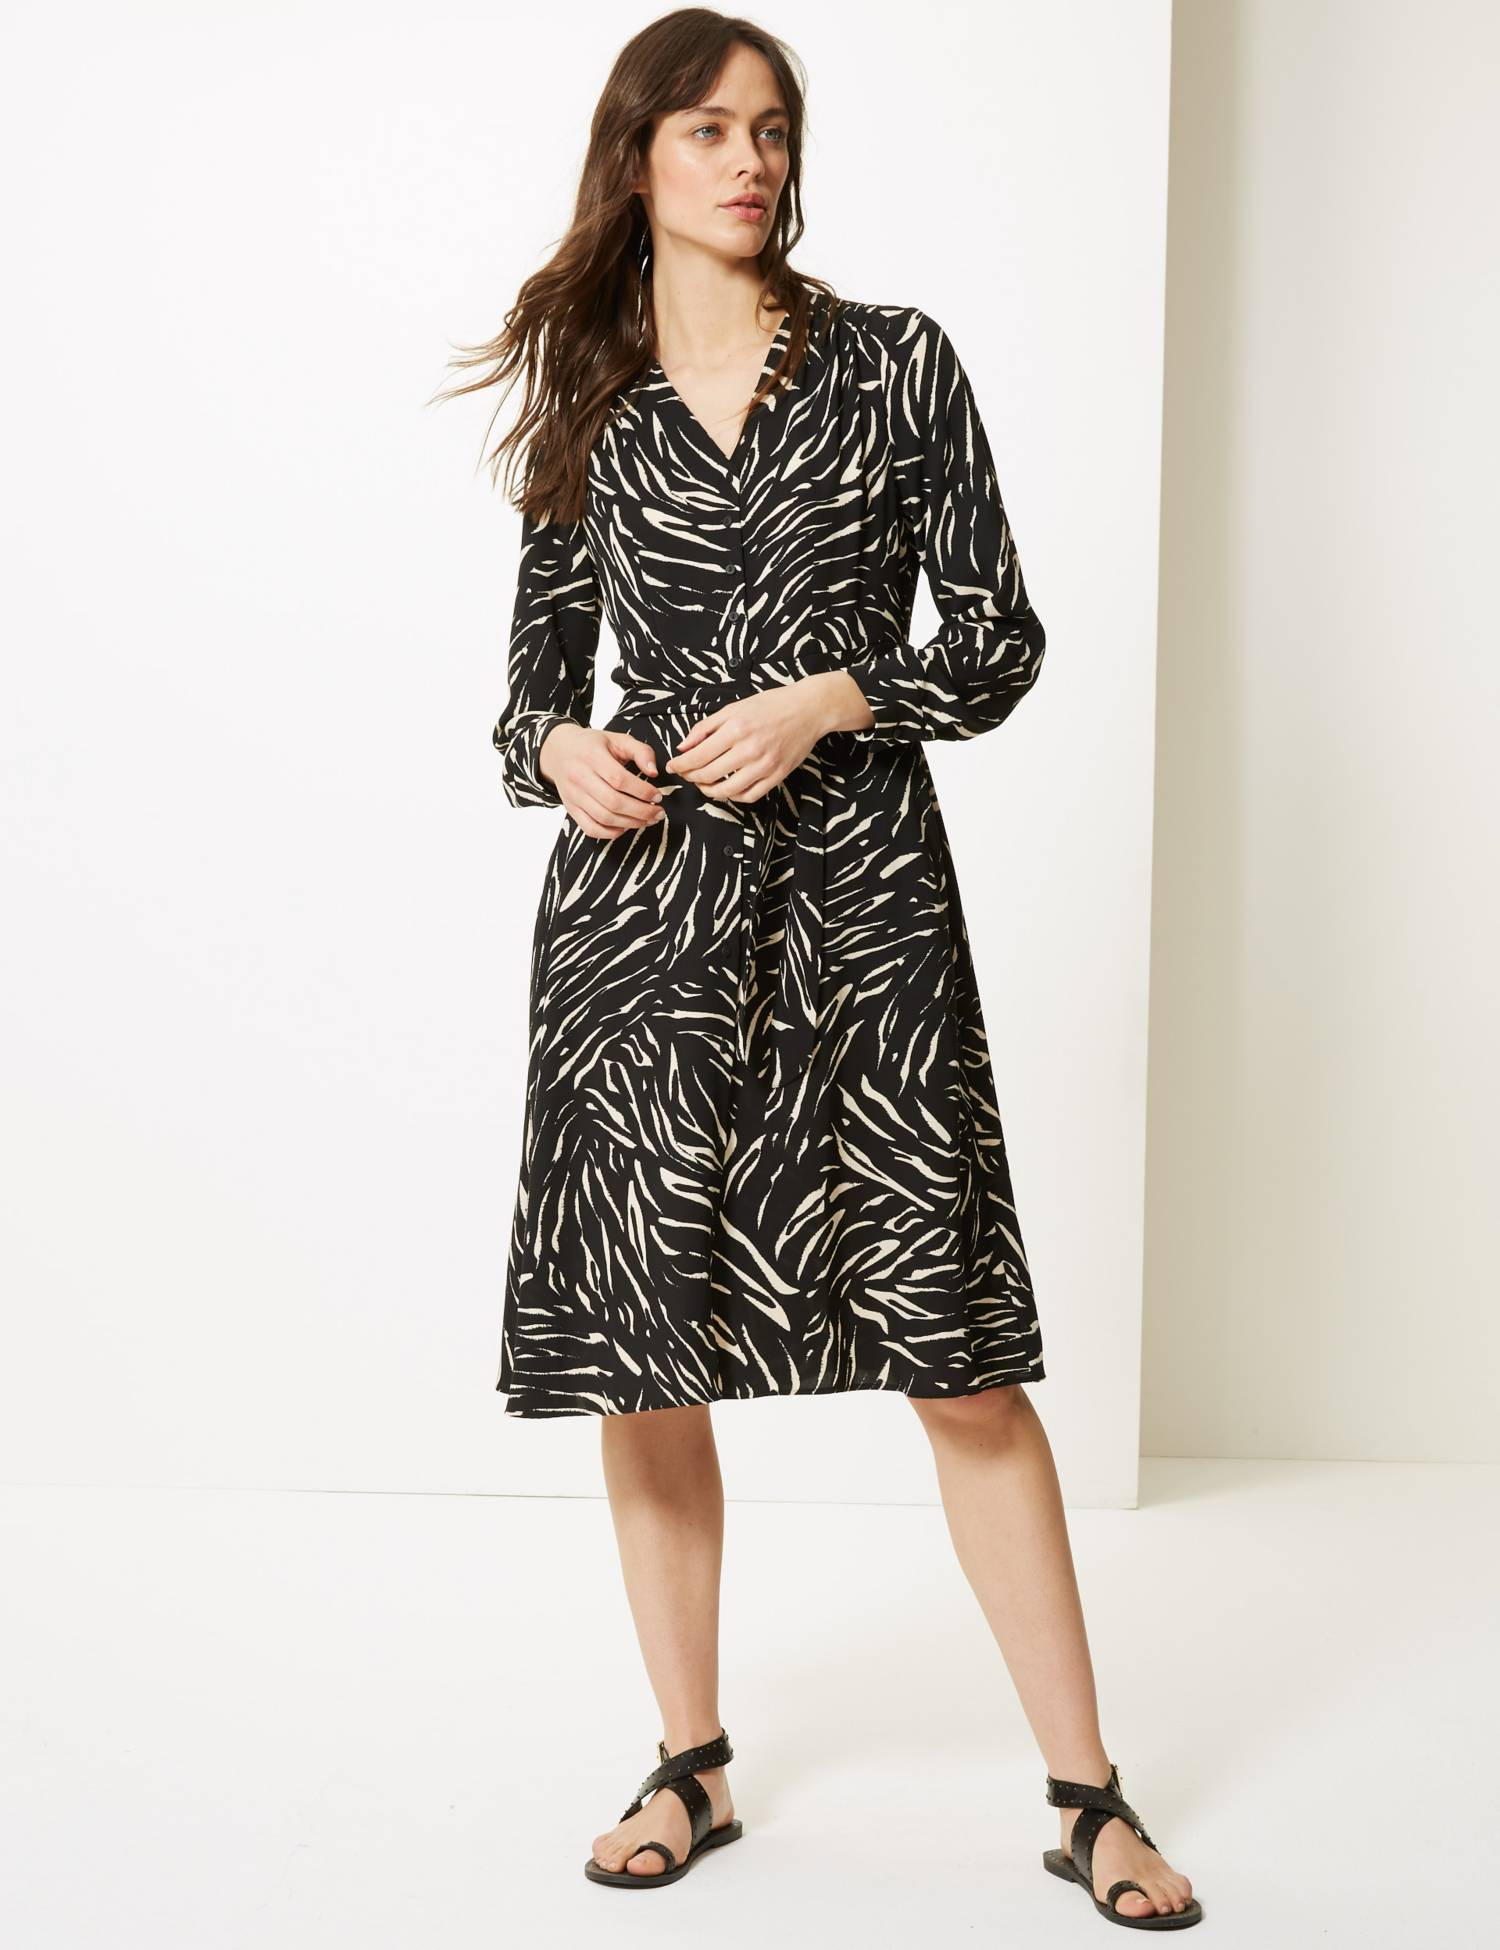 M&S animal print dress